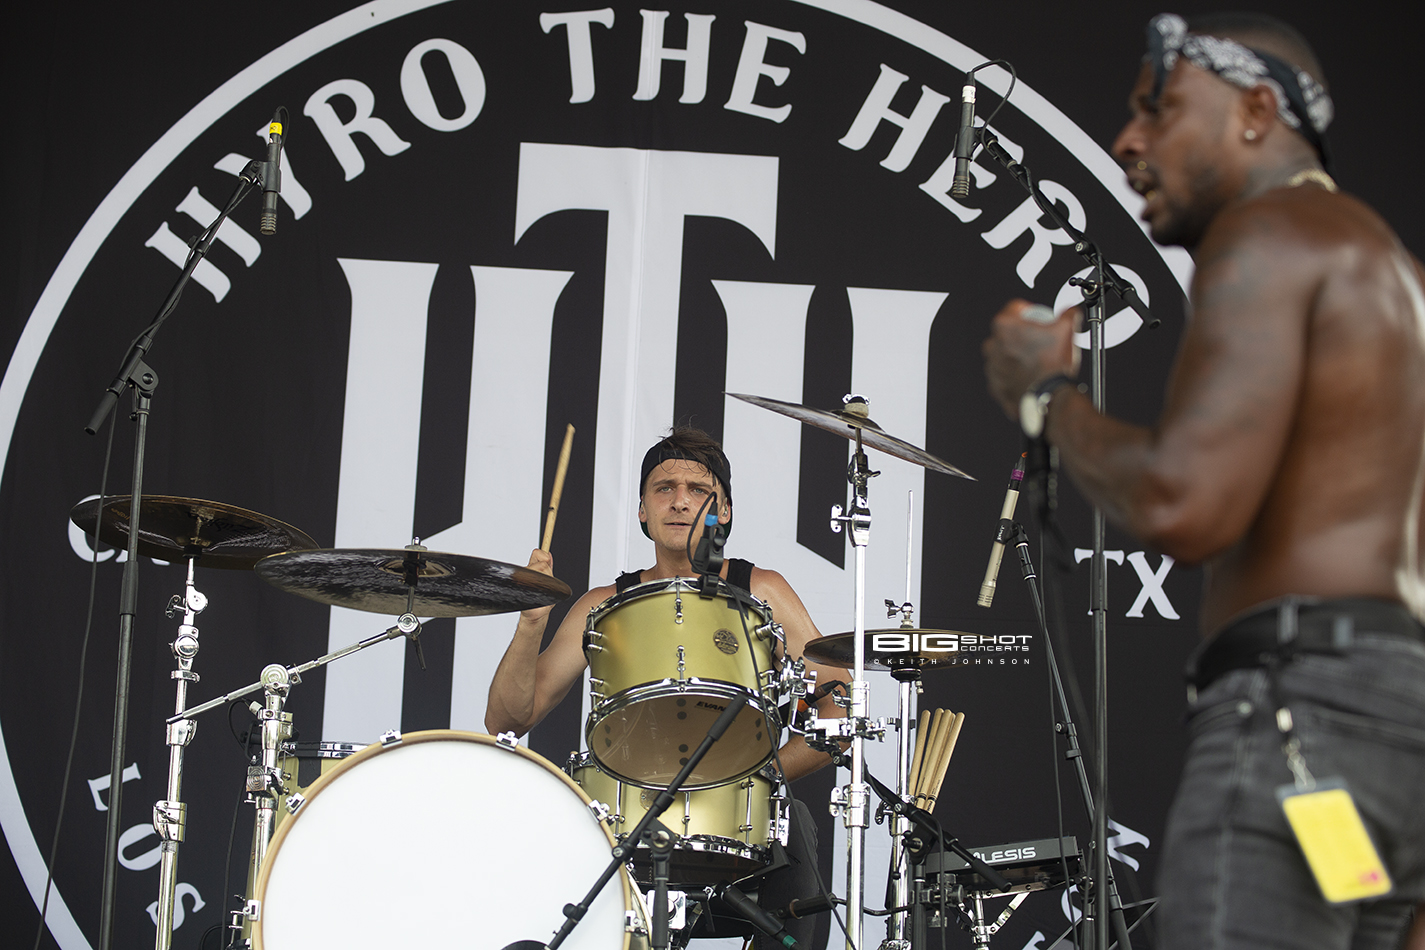 Rockstar Energy Disrupt Festival Band Hyro the Hero